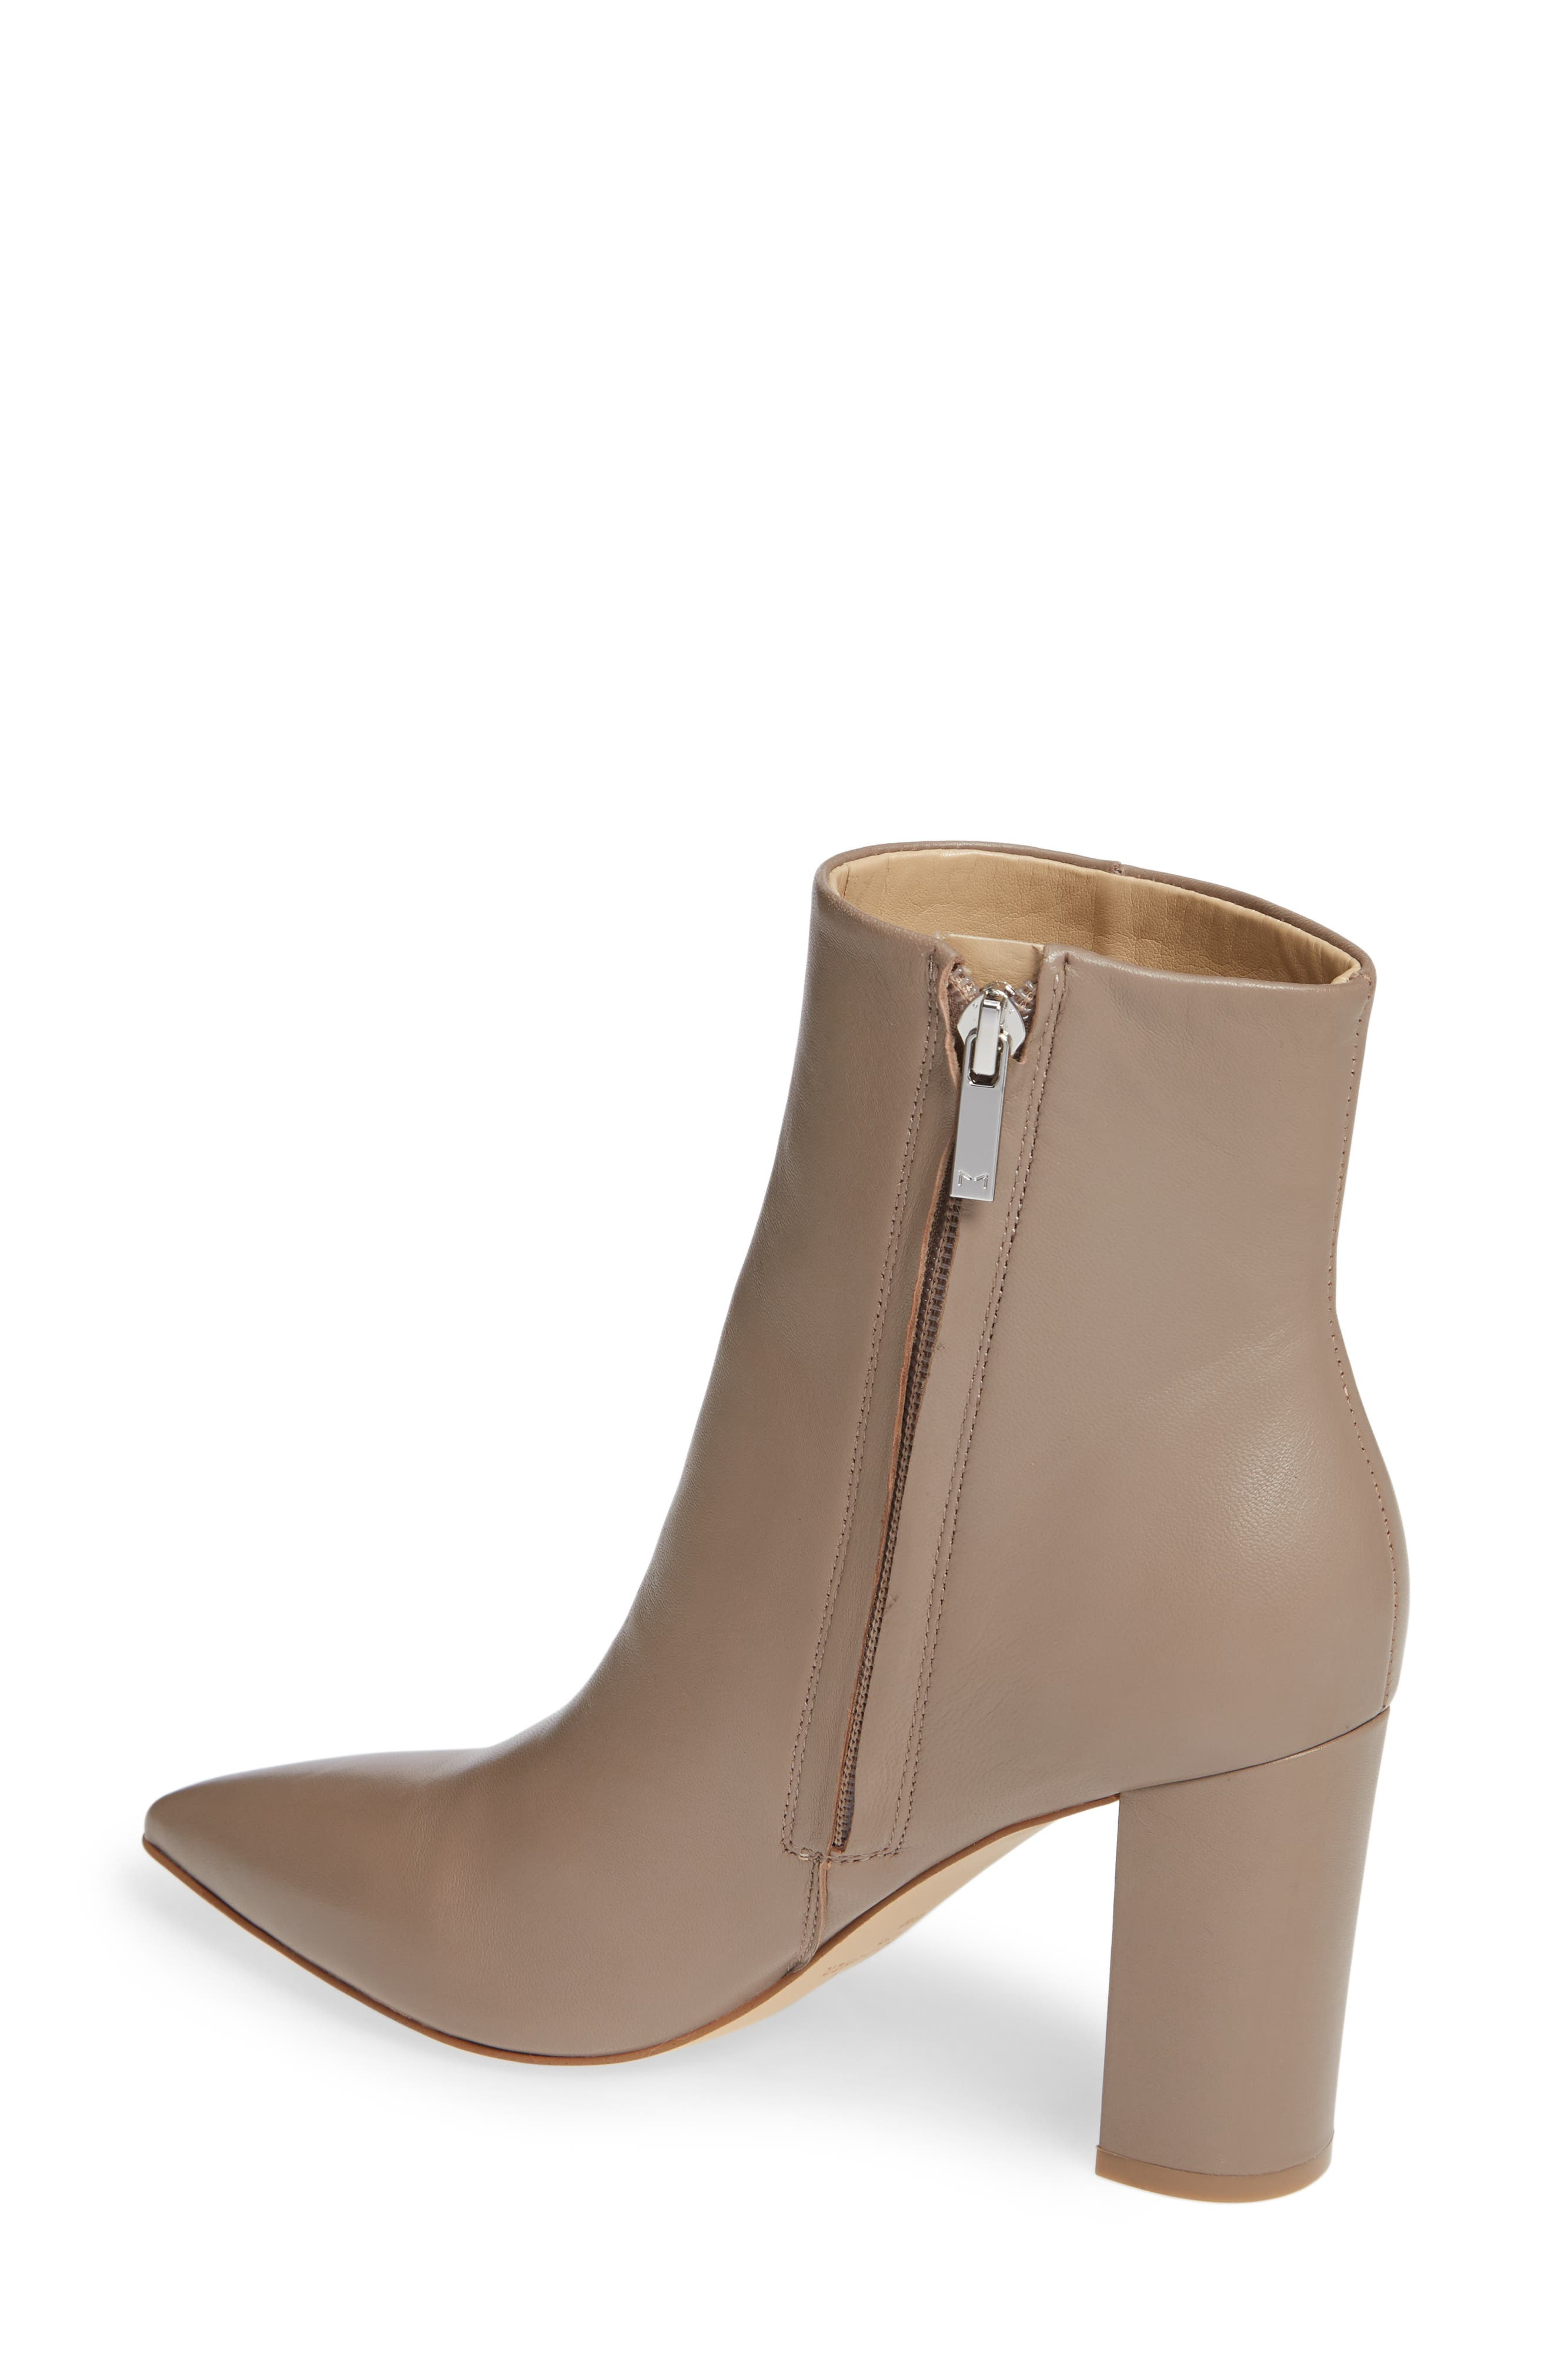 MARC FISHER LTD,                              Ulani Pointy Toe Bootie,                             Alternate thumbnail 2, color,                             TAUPE LEATHER